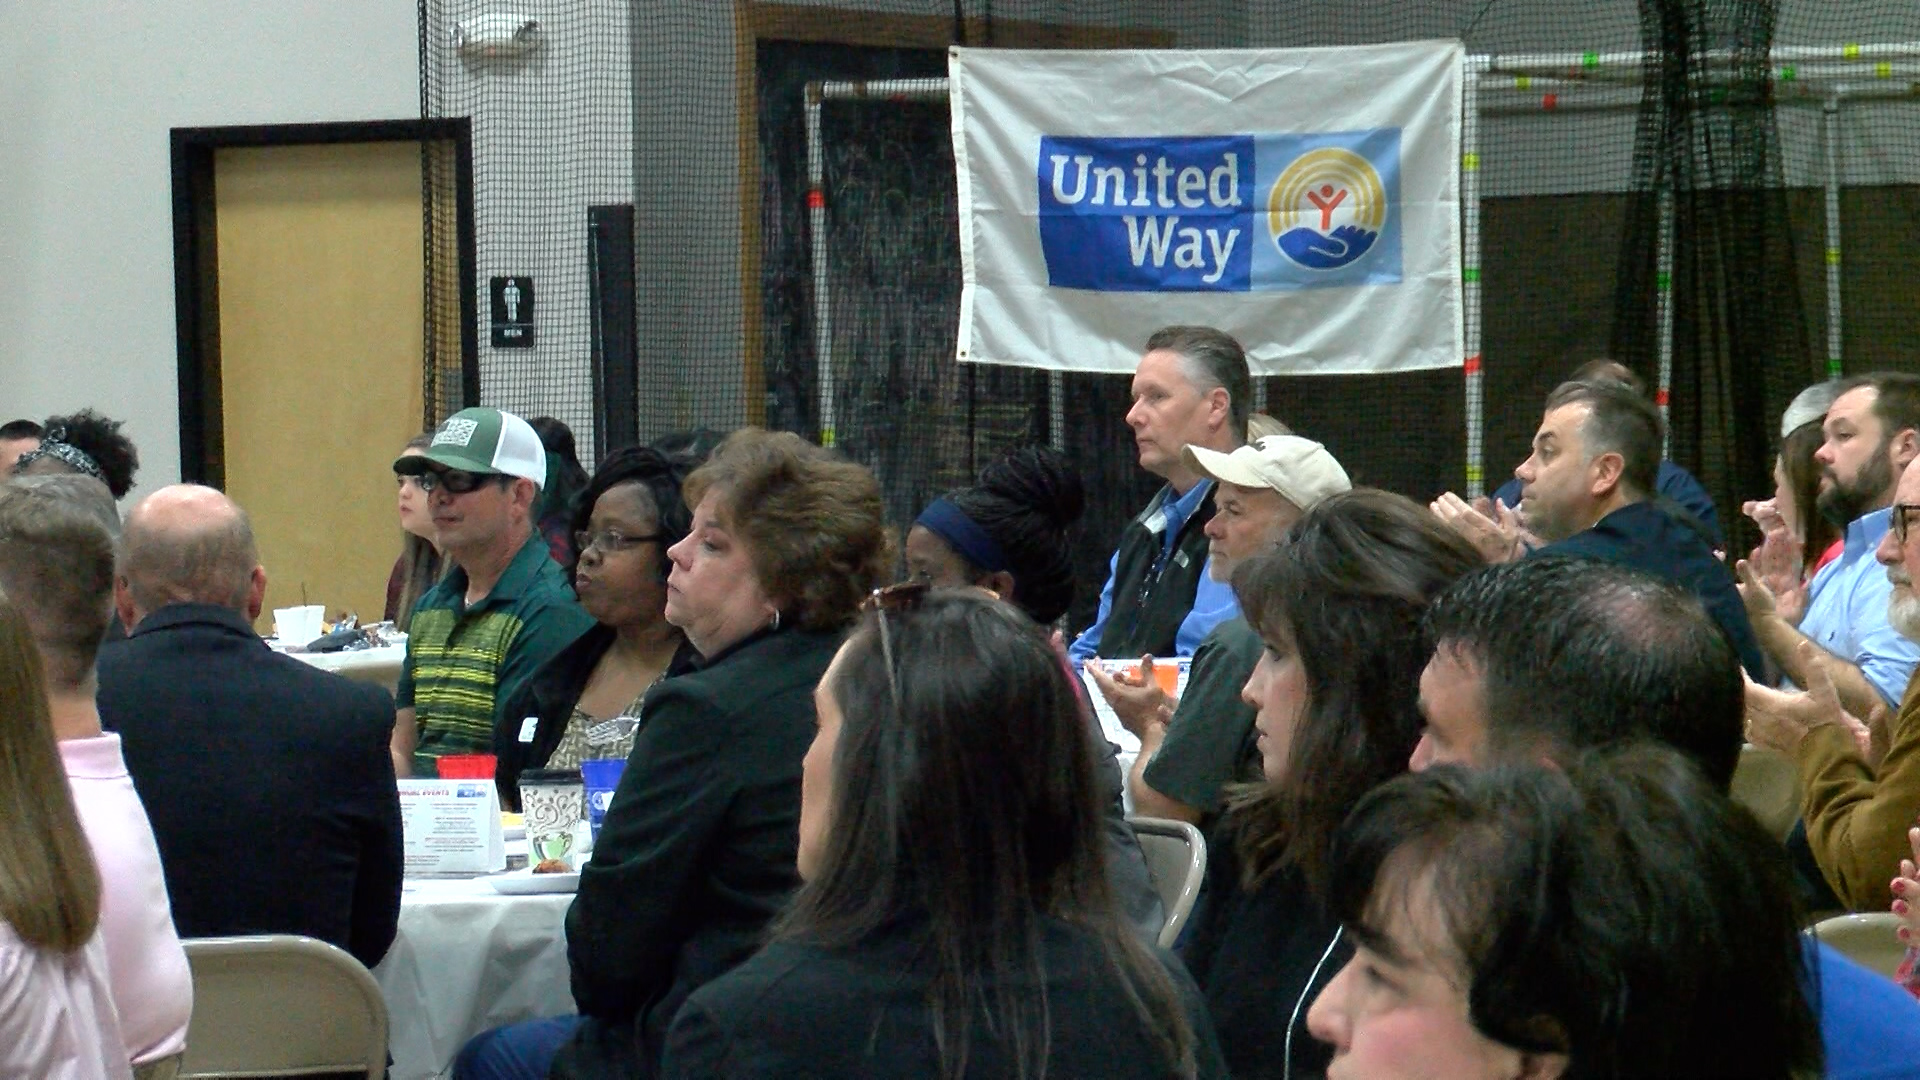 United Way Breakfast_1553285818437.jpg.jpg